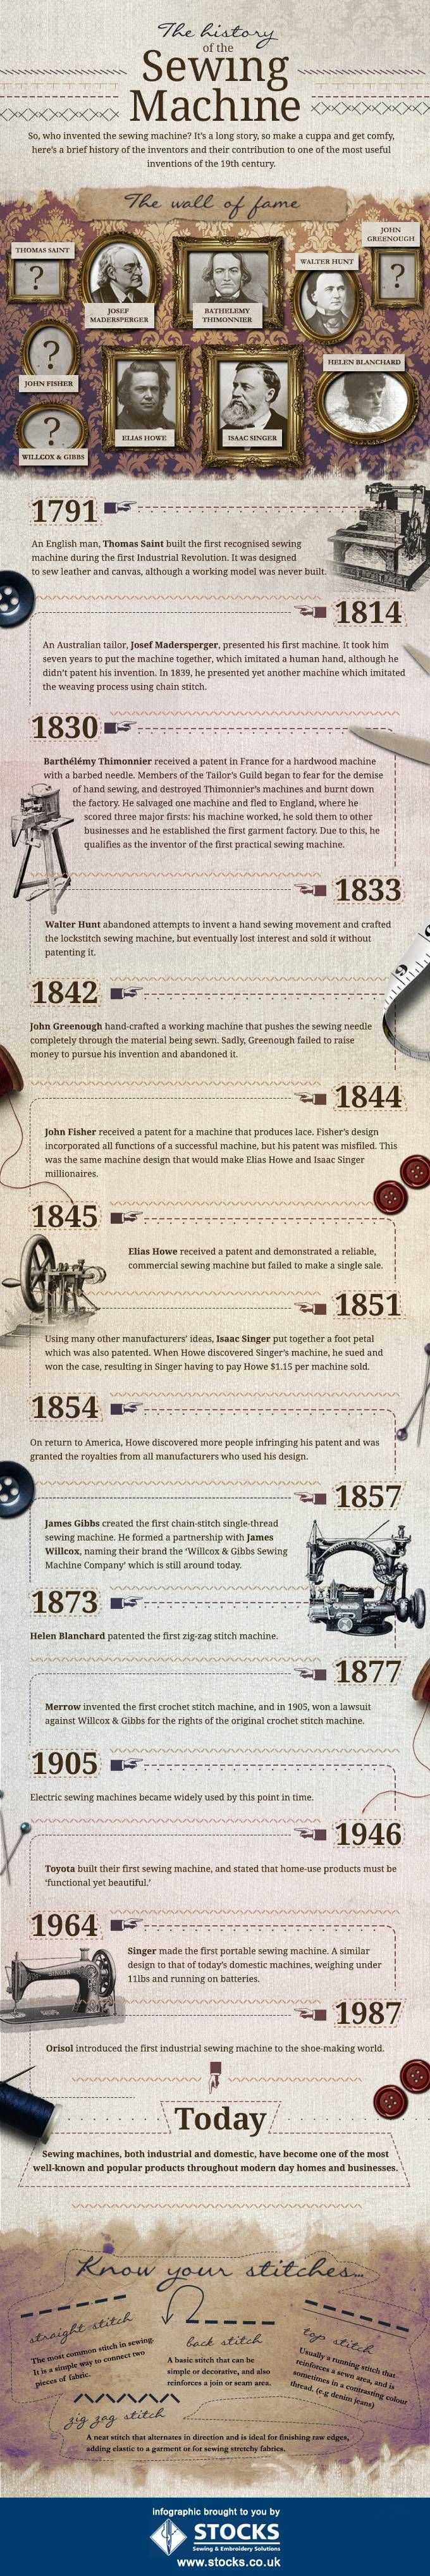 The History Of The Sewing Machine #infographic #SewingMachine #History